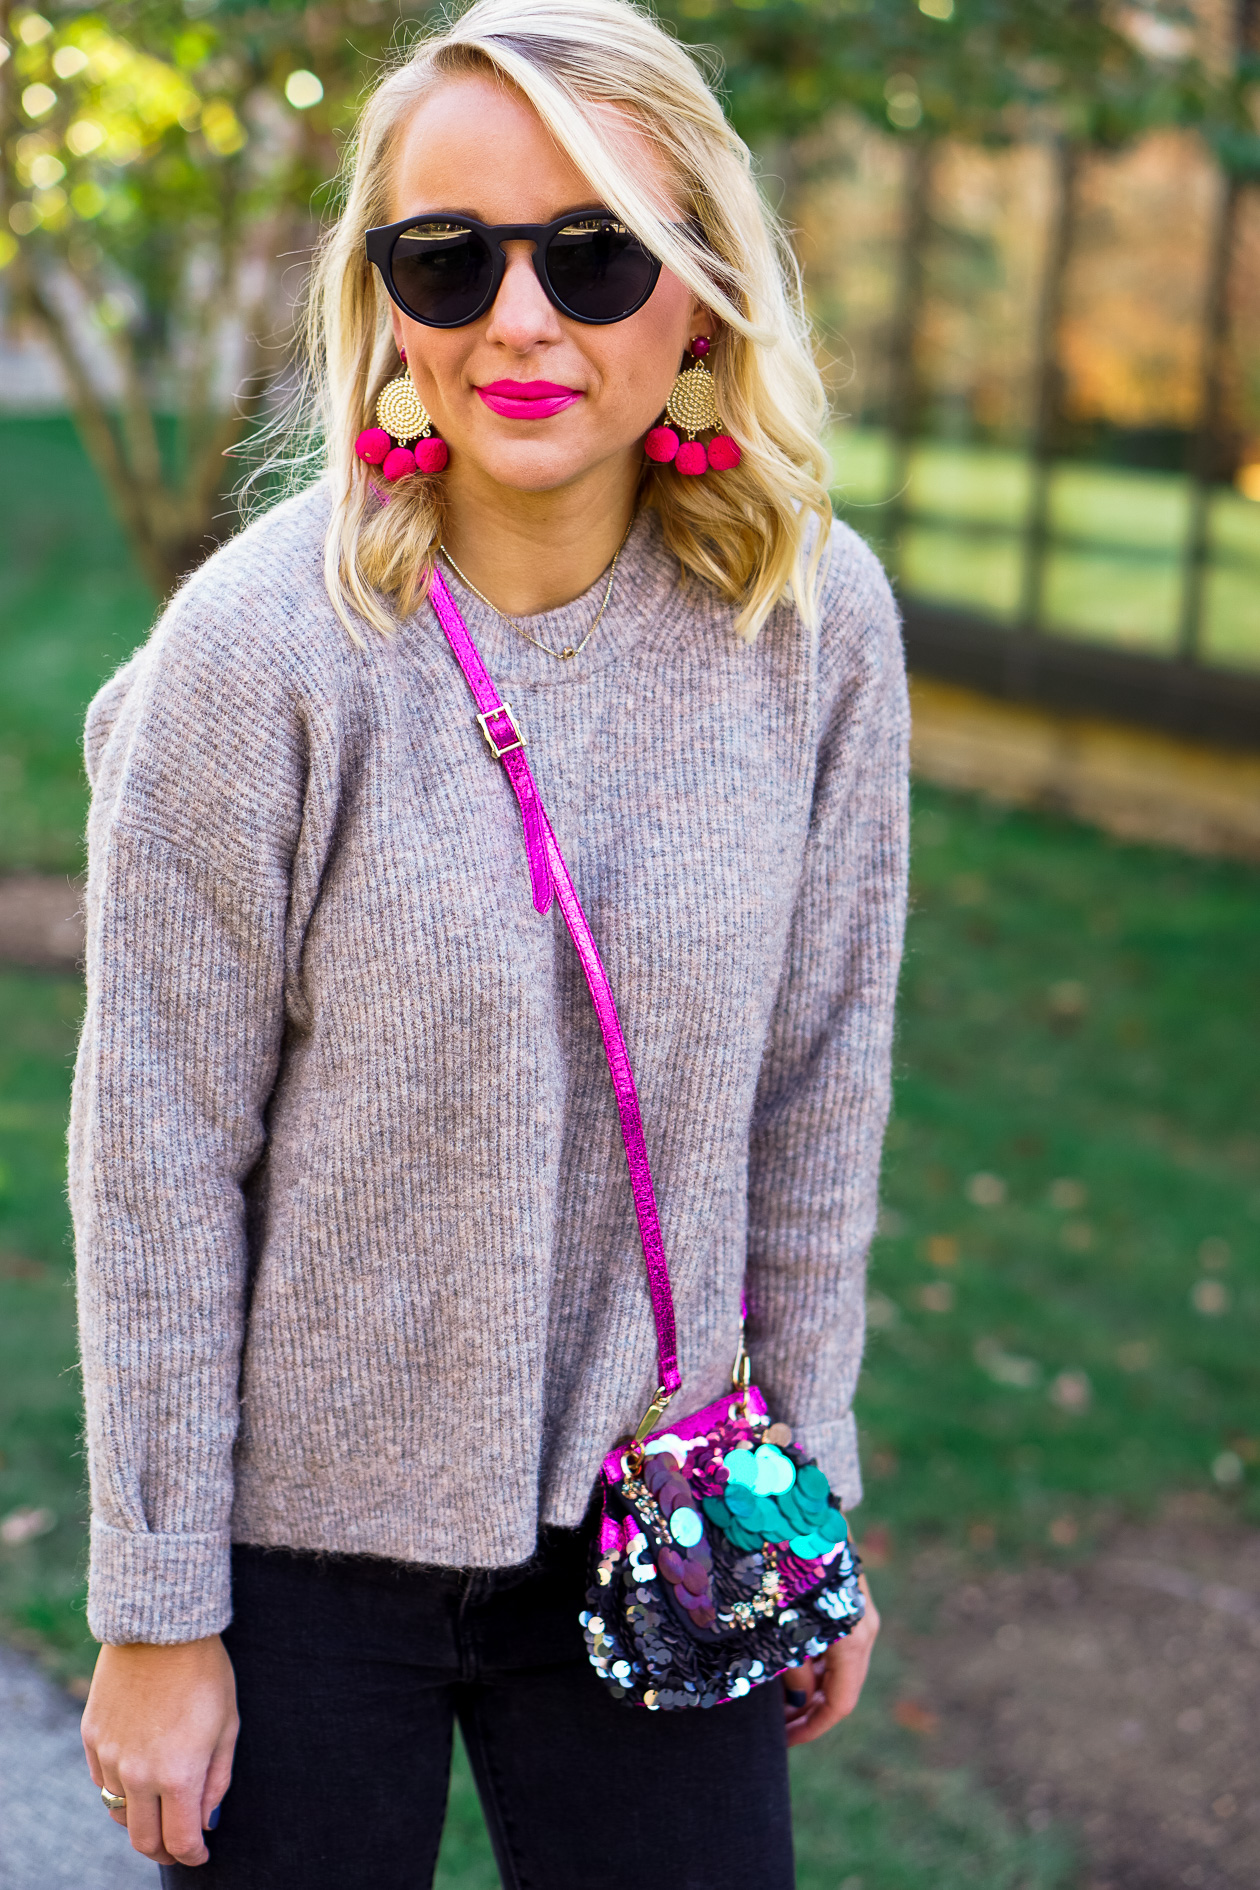 Free People sequin bag and olive green booties with Sugarfix by BaubleBar earrings